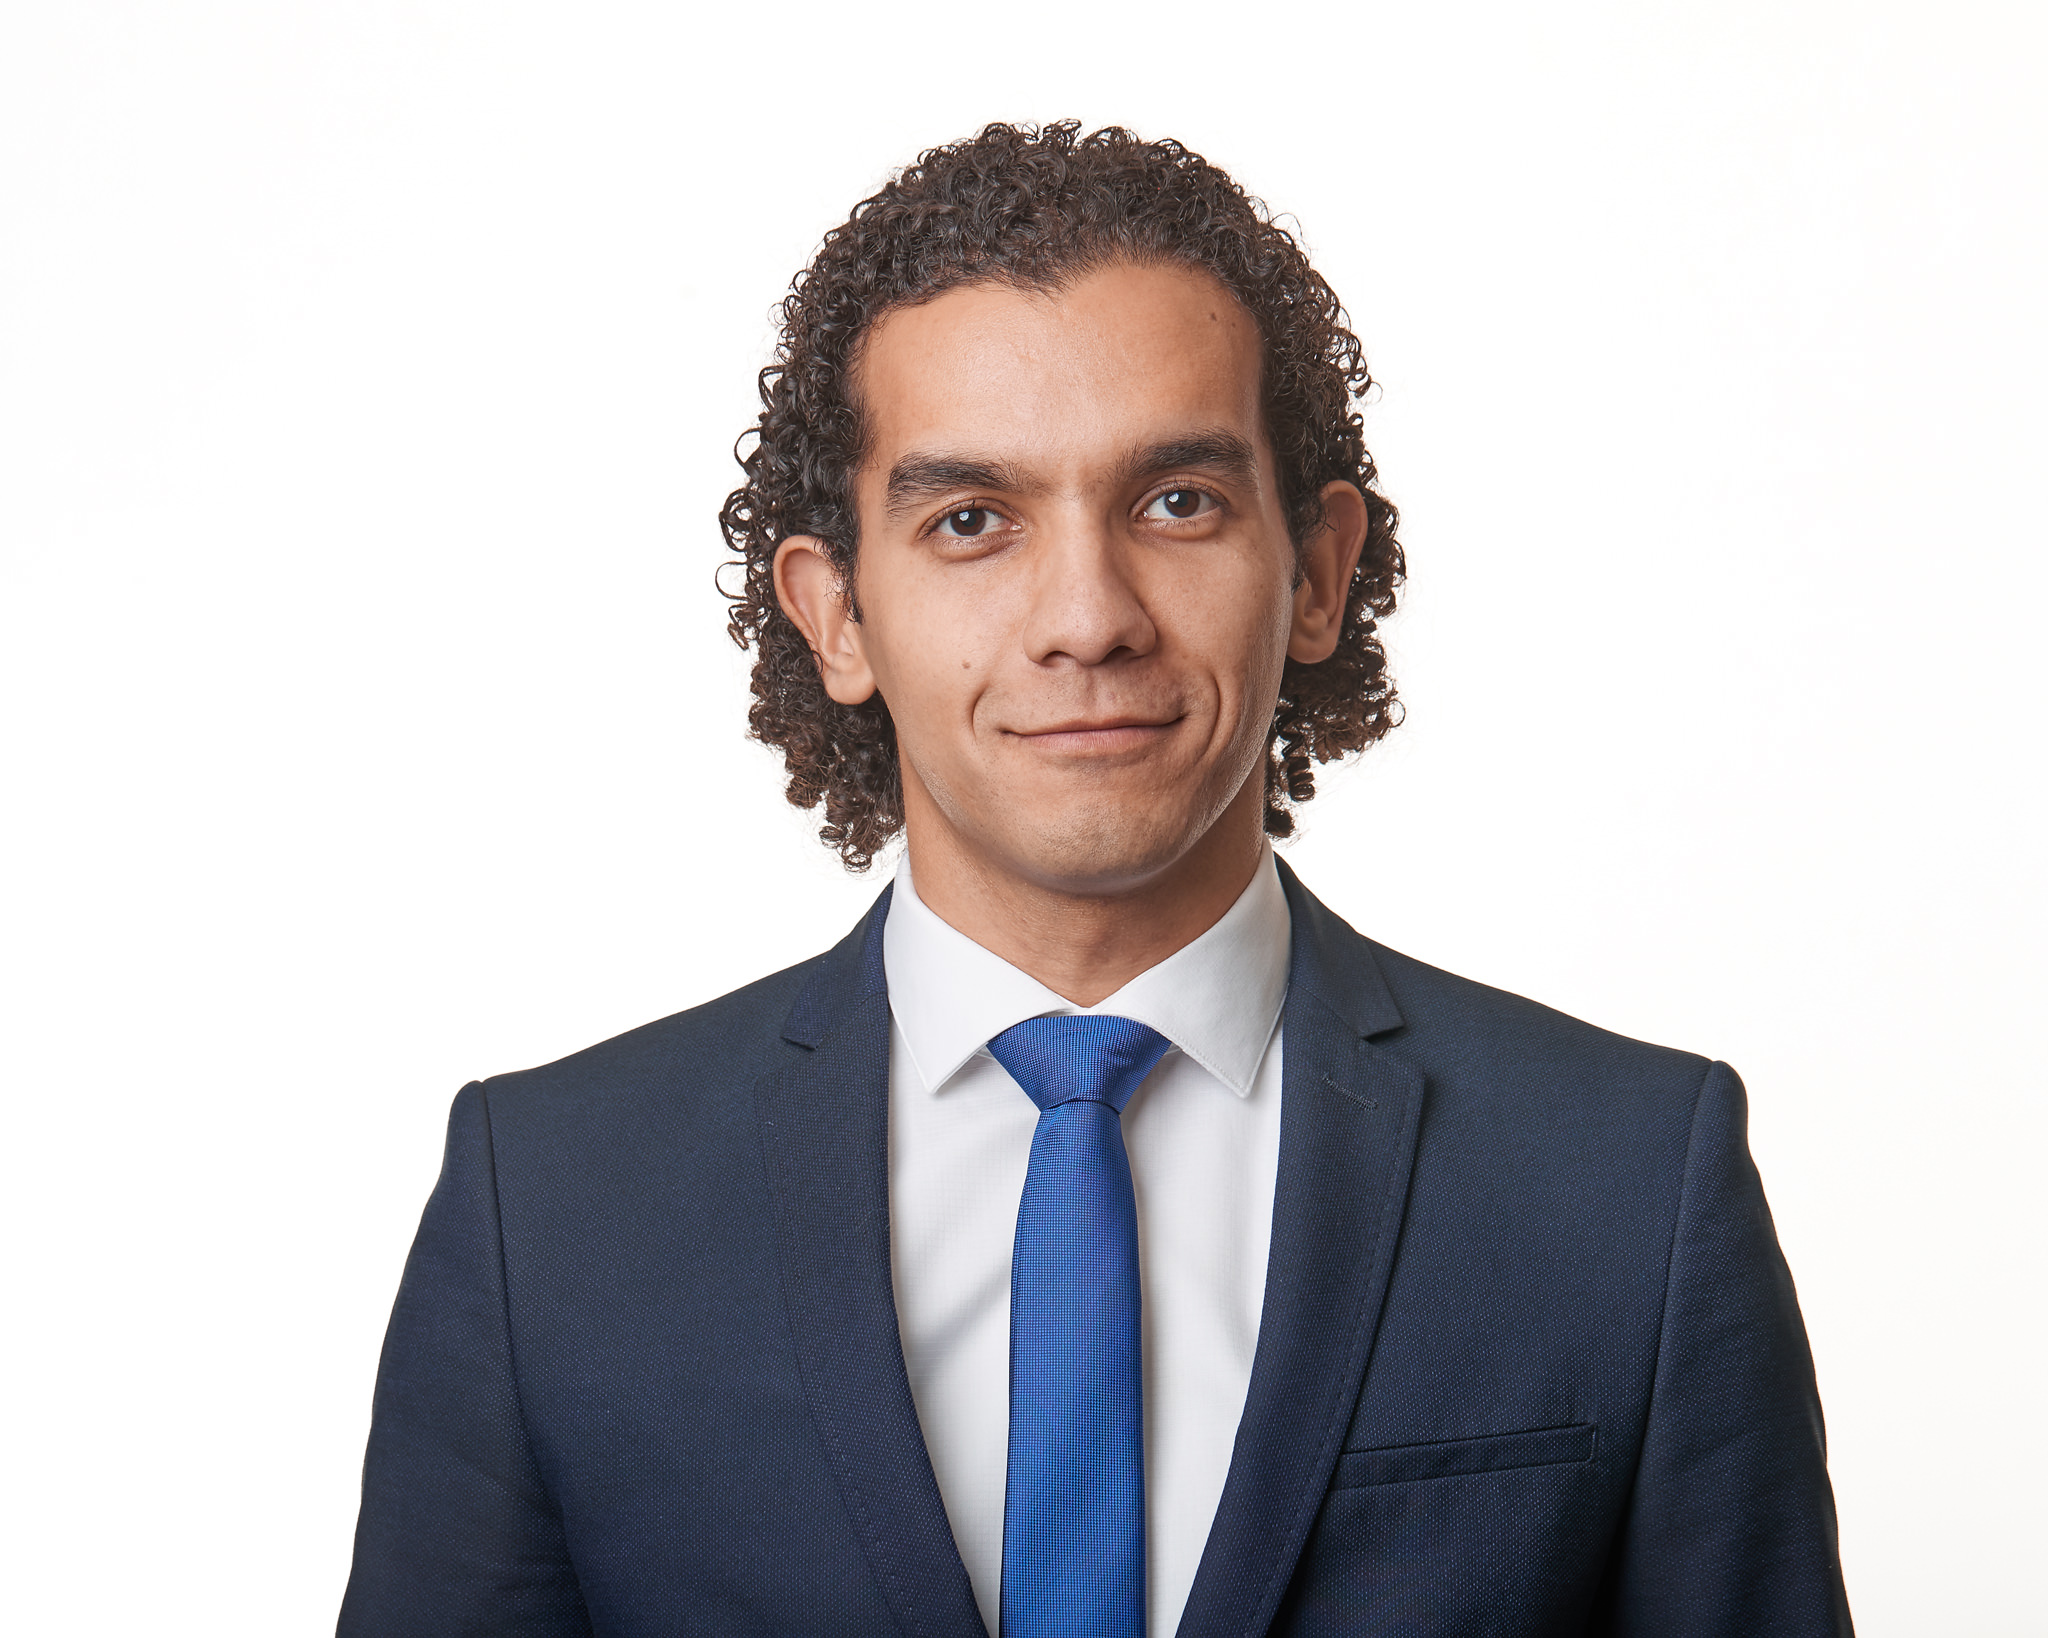 Headshots of male real estate agent.